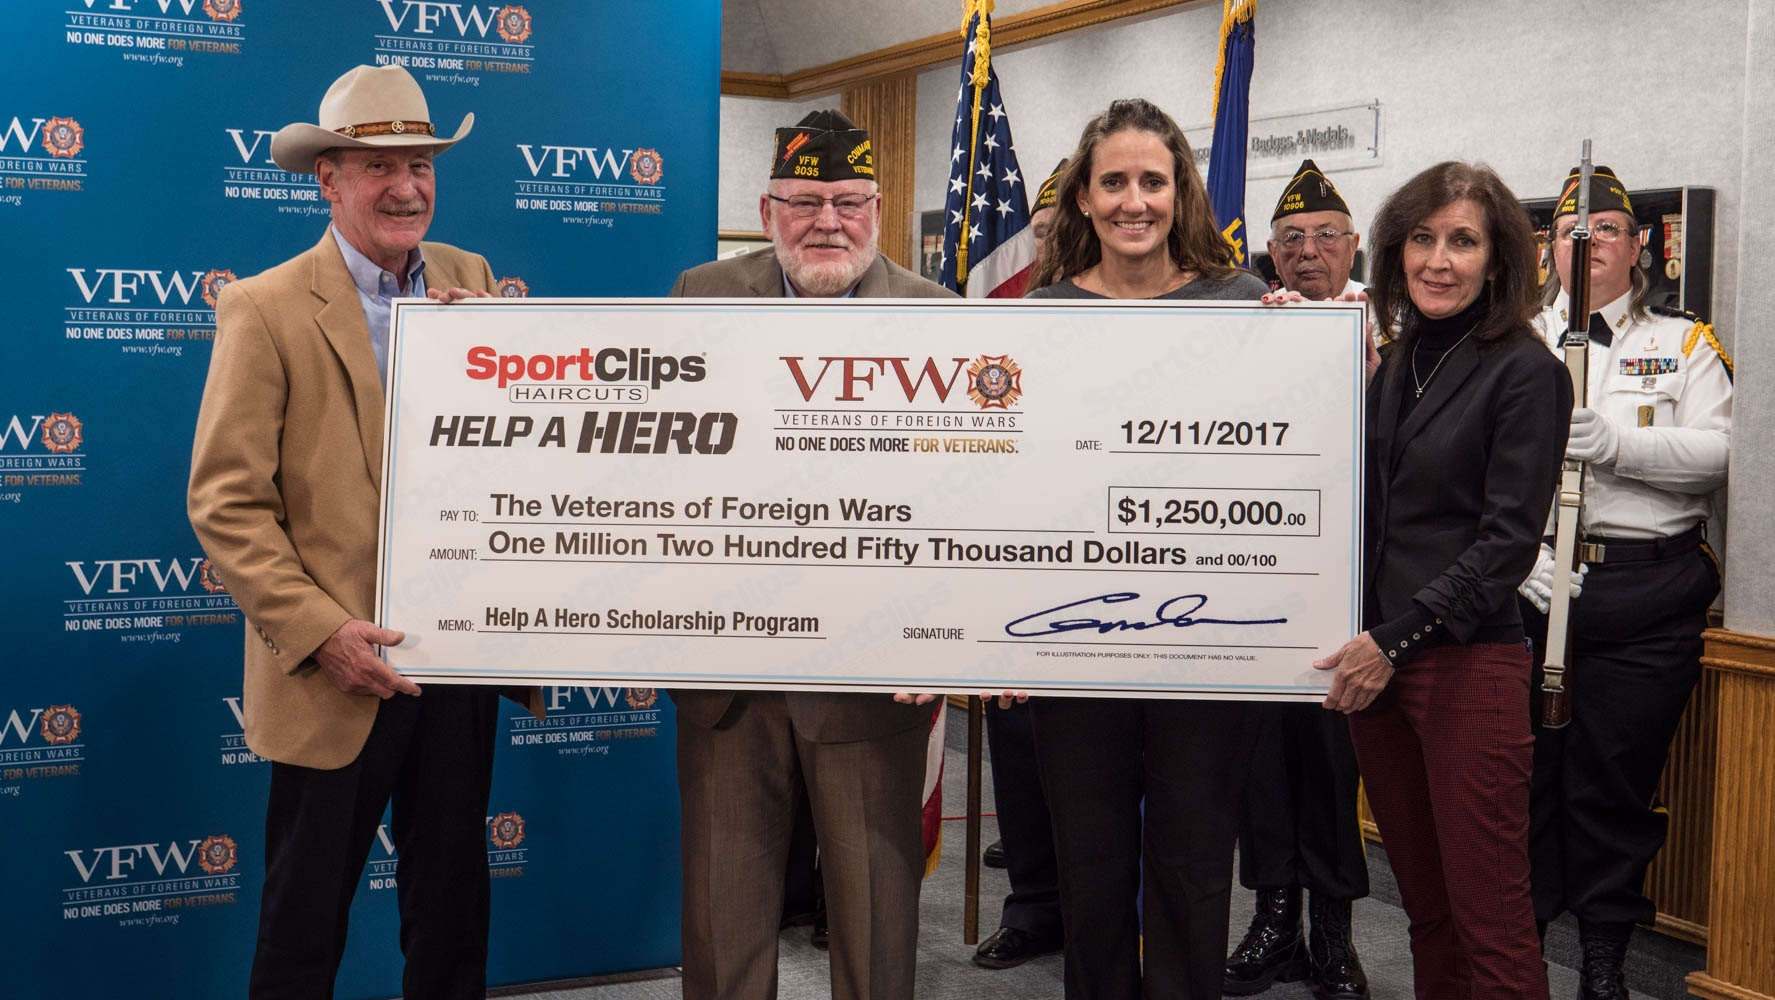 (L to R) Gordon Logan, Sport Clips Haircuts founder and CEO and an Air Force veteran, made the presentation to VFW National Commander Keith E. Harman; along with Amanda Palm, Sport Clips corporate communications manager, who oversees the Help A Hero program; and Martha England, Sport Clips vice president of Marketing.